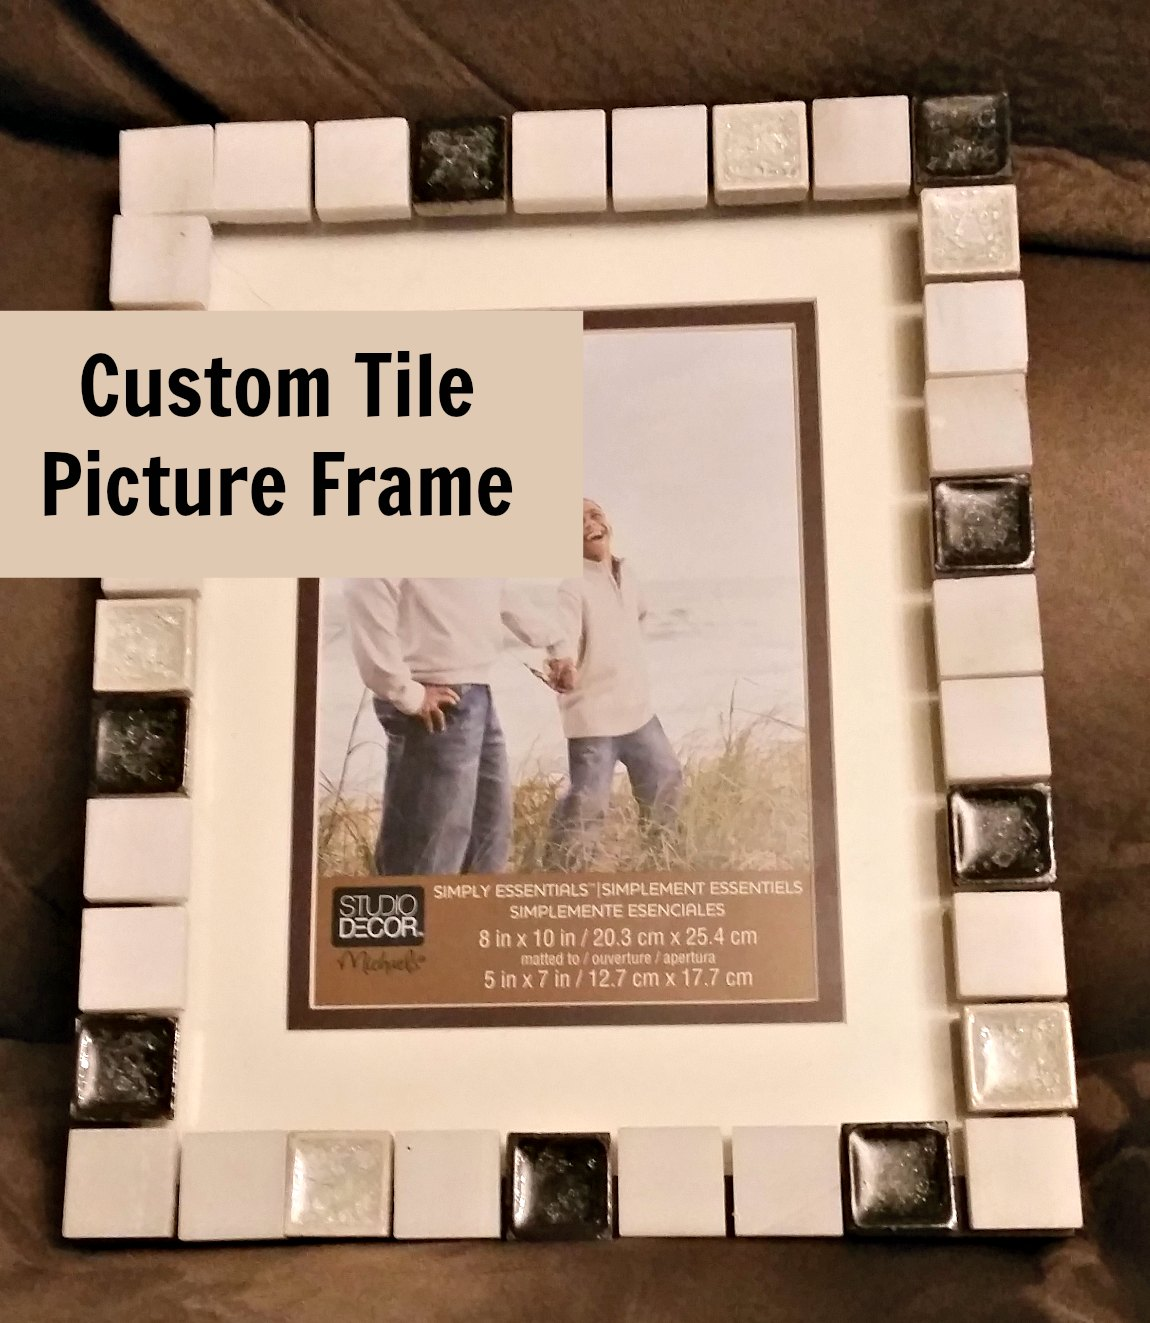 Diy Make Customer Tile Picture Frames Eat Travel Life